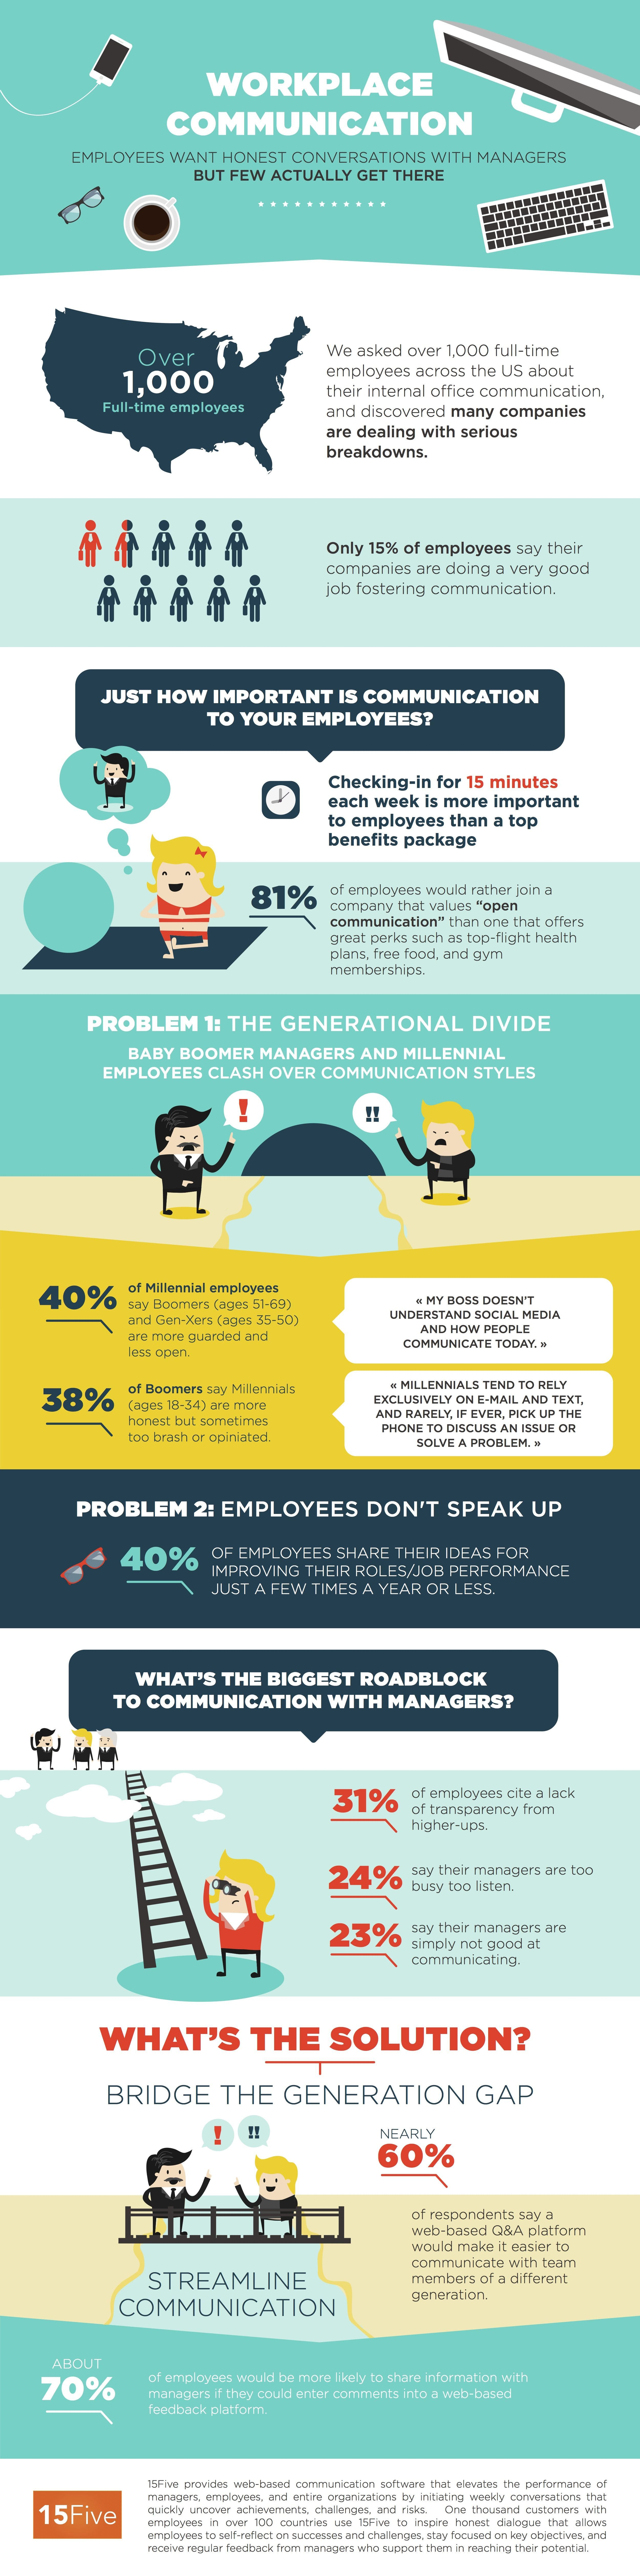 Workplace Communication #infographic